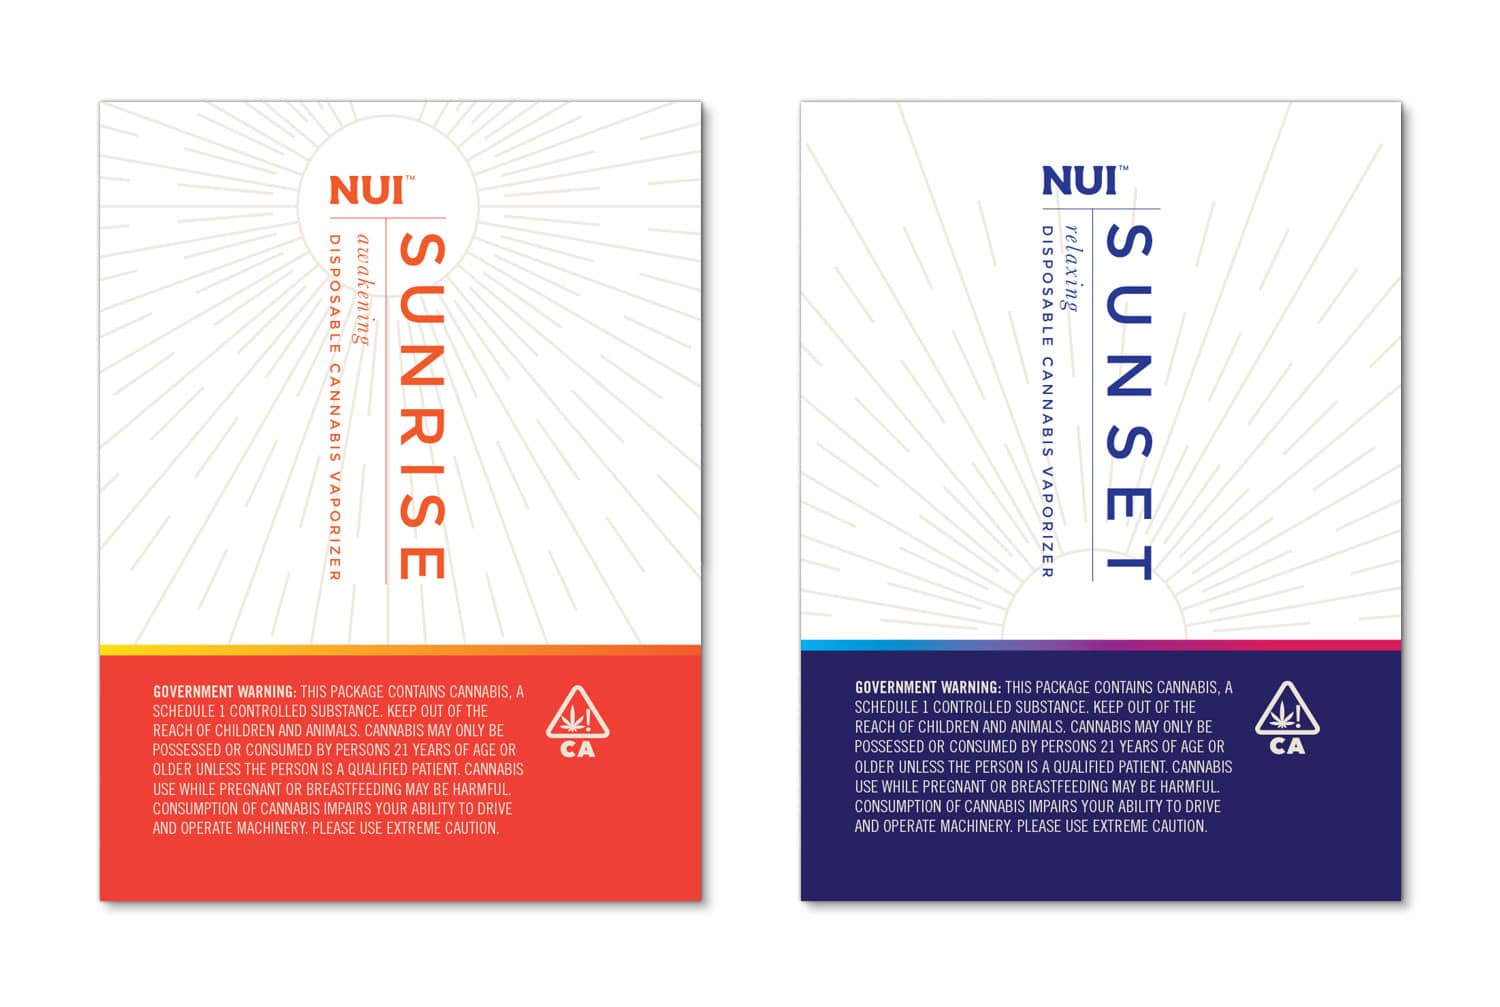 NUI packaging design, full label 2